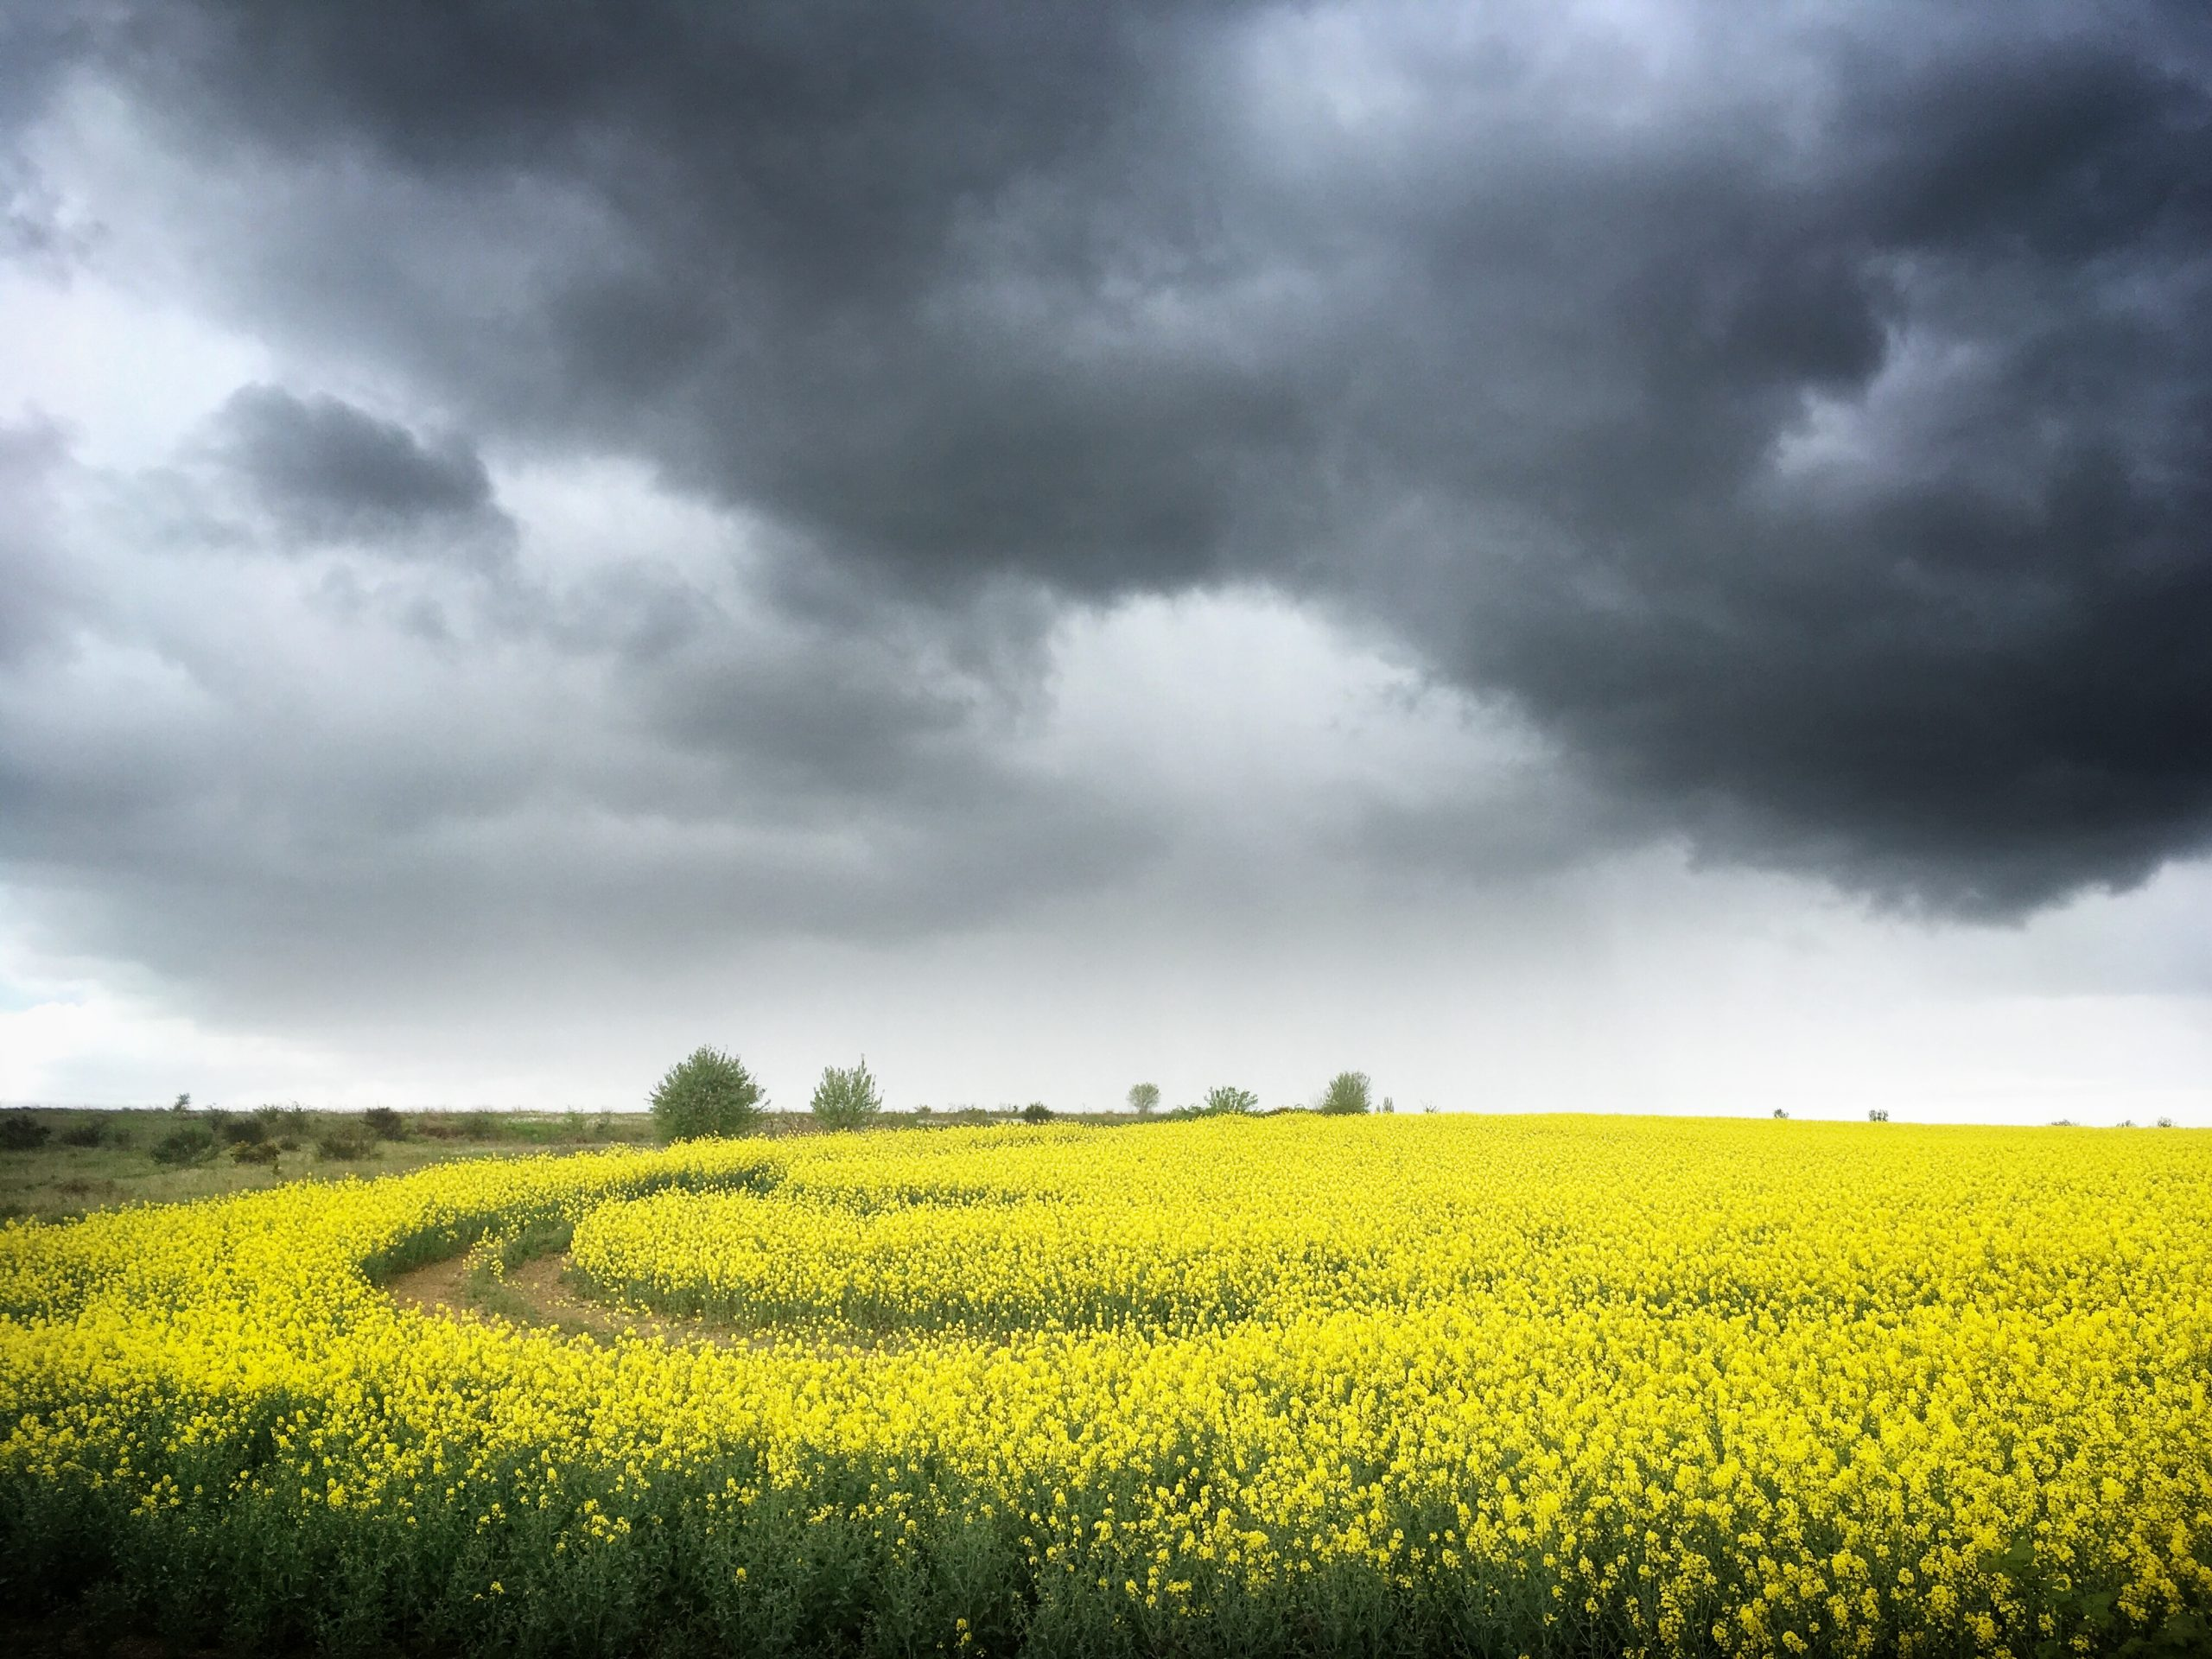 yellow fields with stormy skies